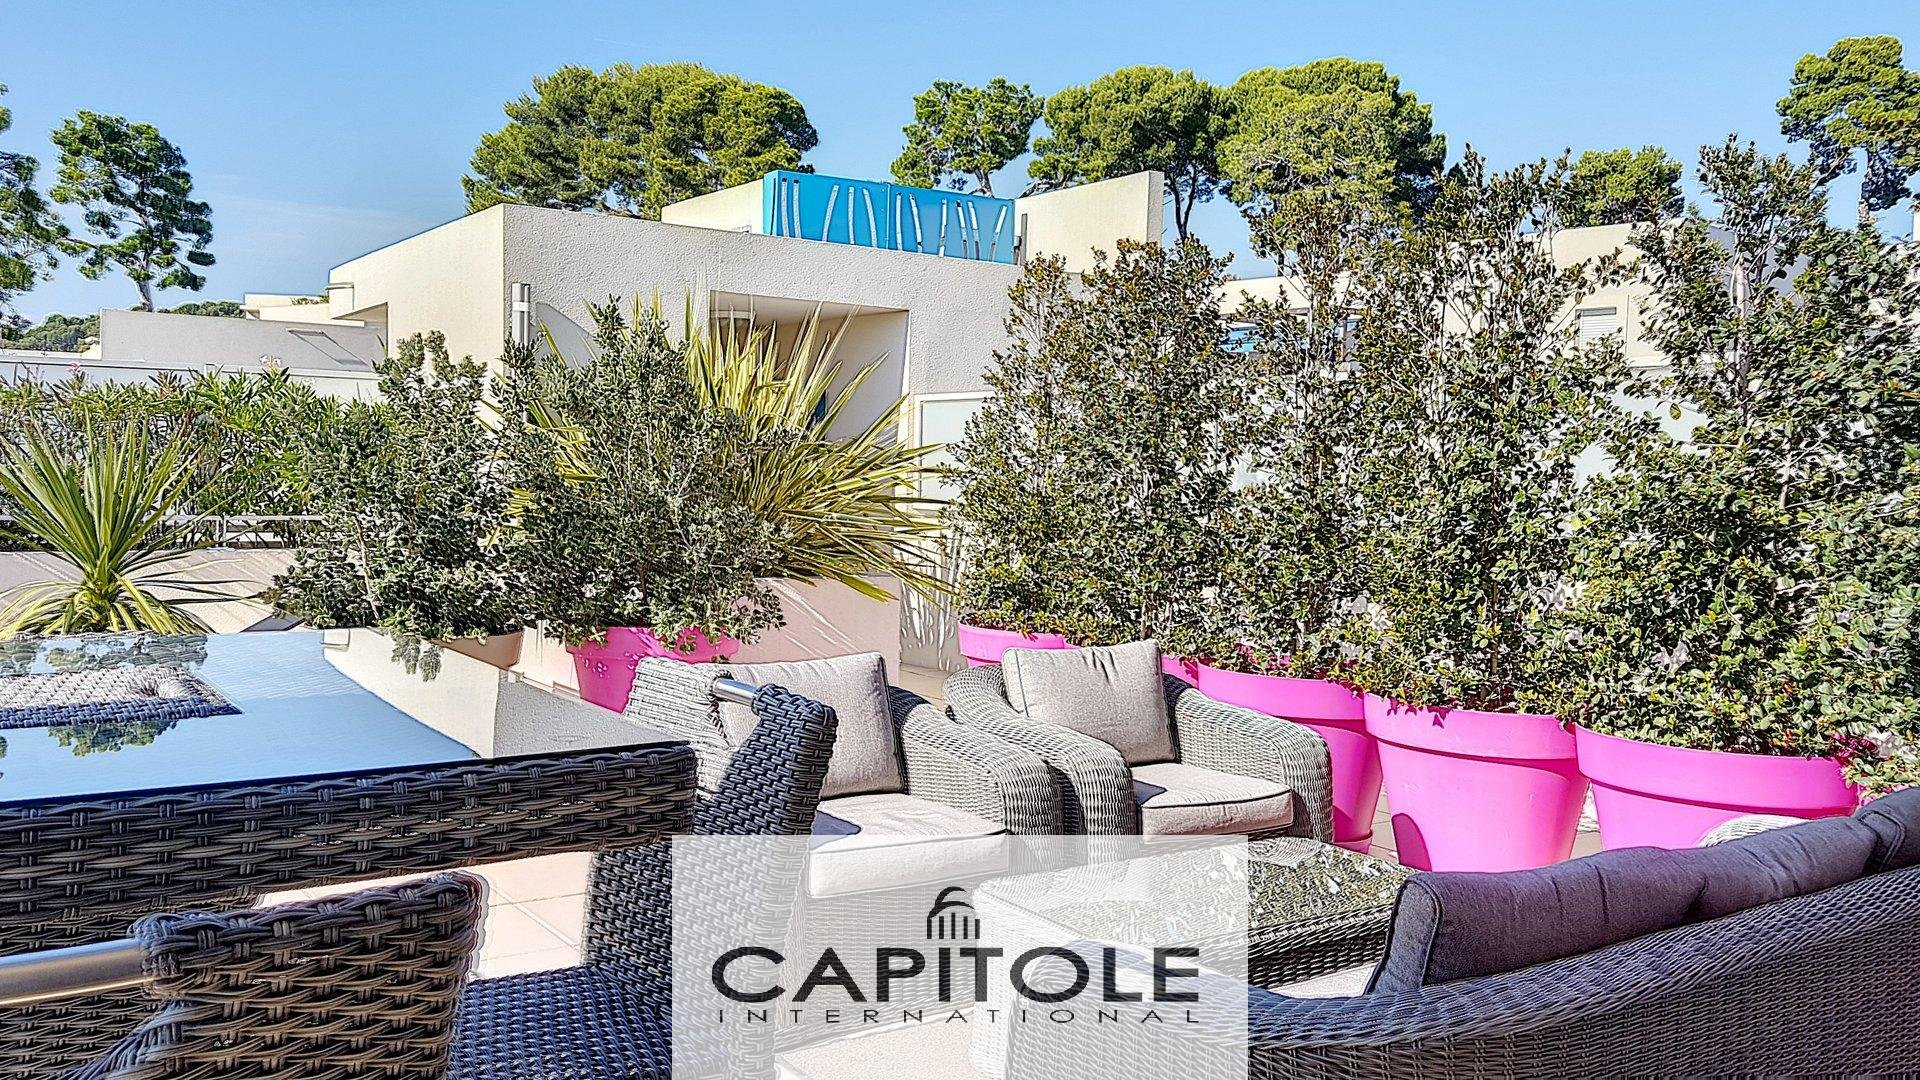 For sale, Antibes, 2 bedroom penthouse of 77.13m², 80 m² terrace, open sea view, double garage